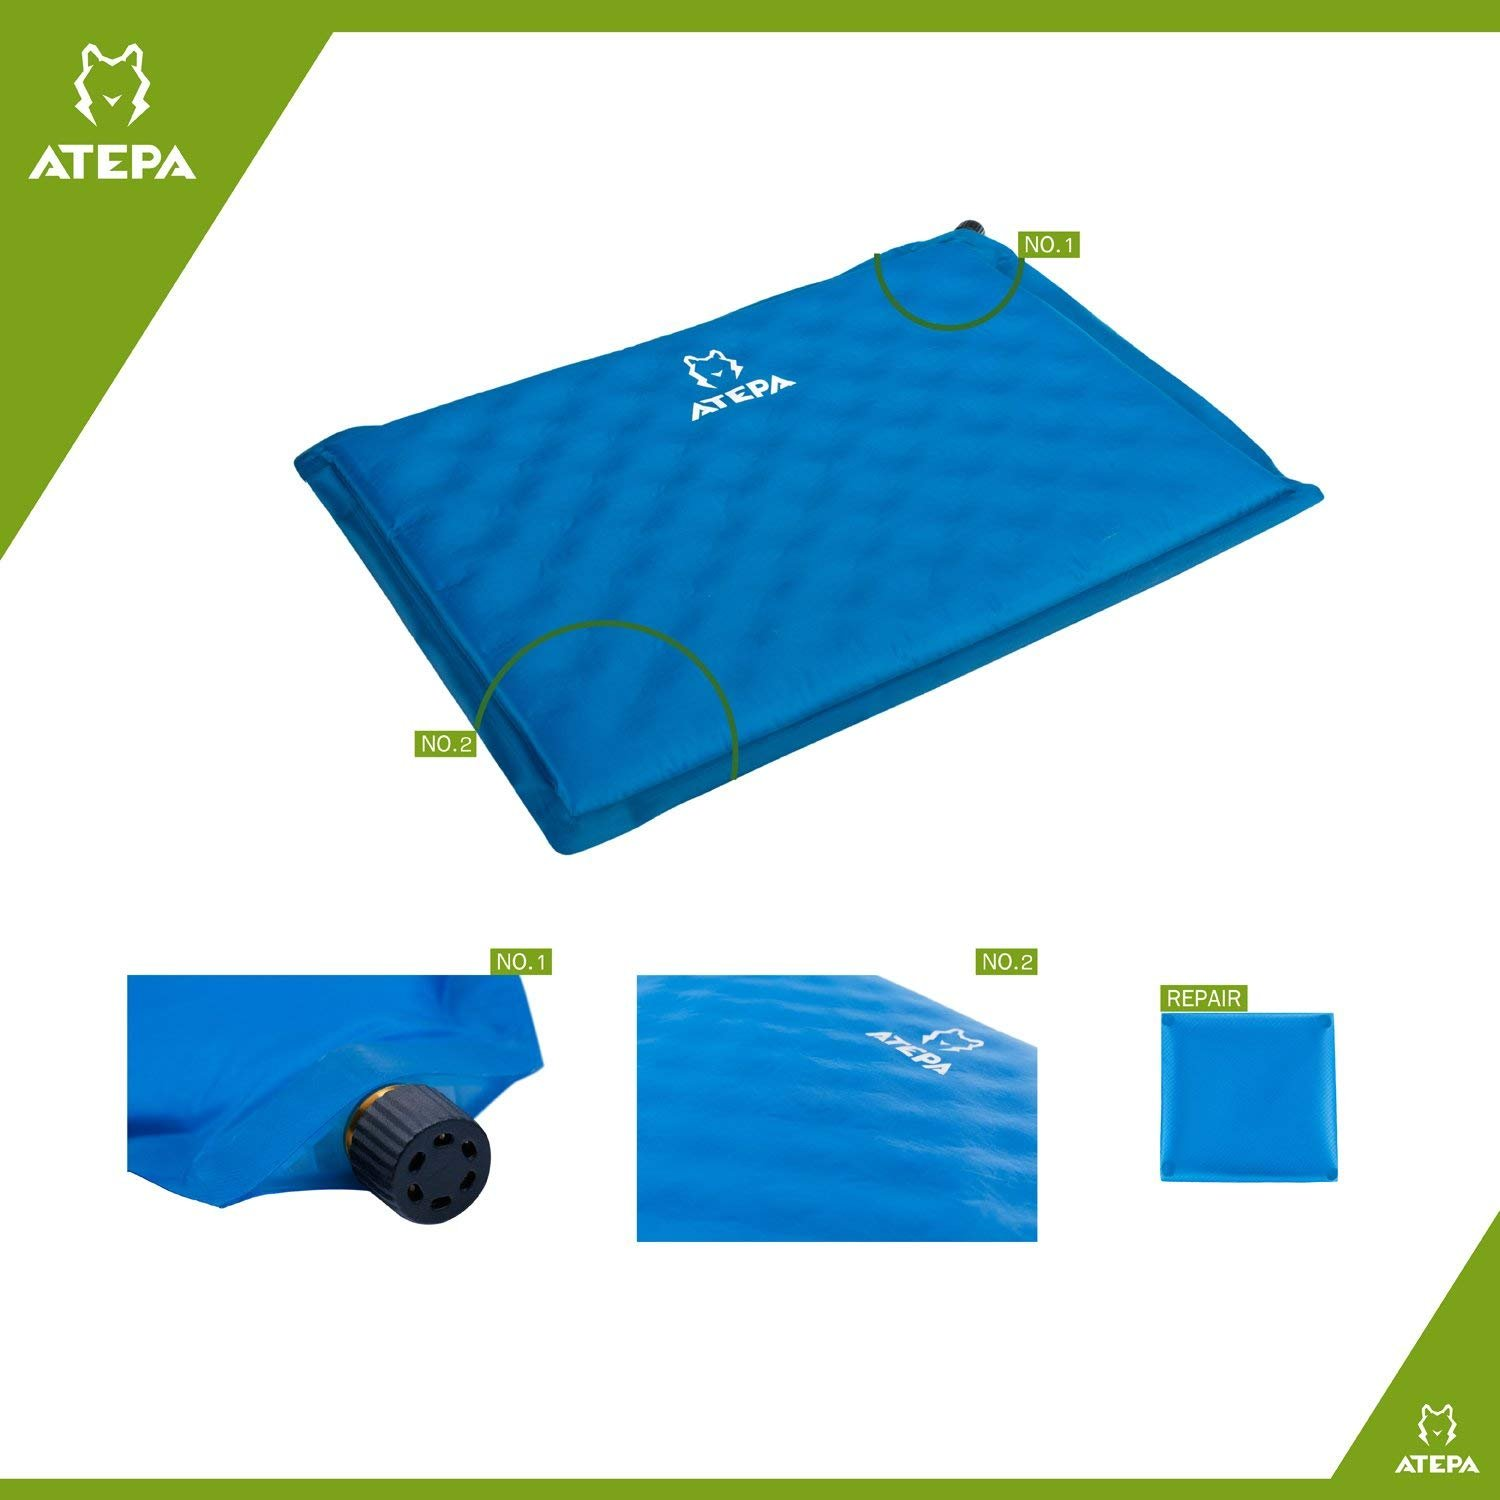 ATEPA Portable Multipurpose Outdoor Self Inflatable Seat Cushion, Can Be Used as Pillow or Stadium Seat